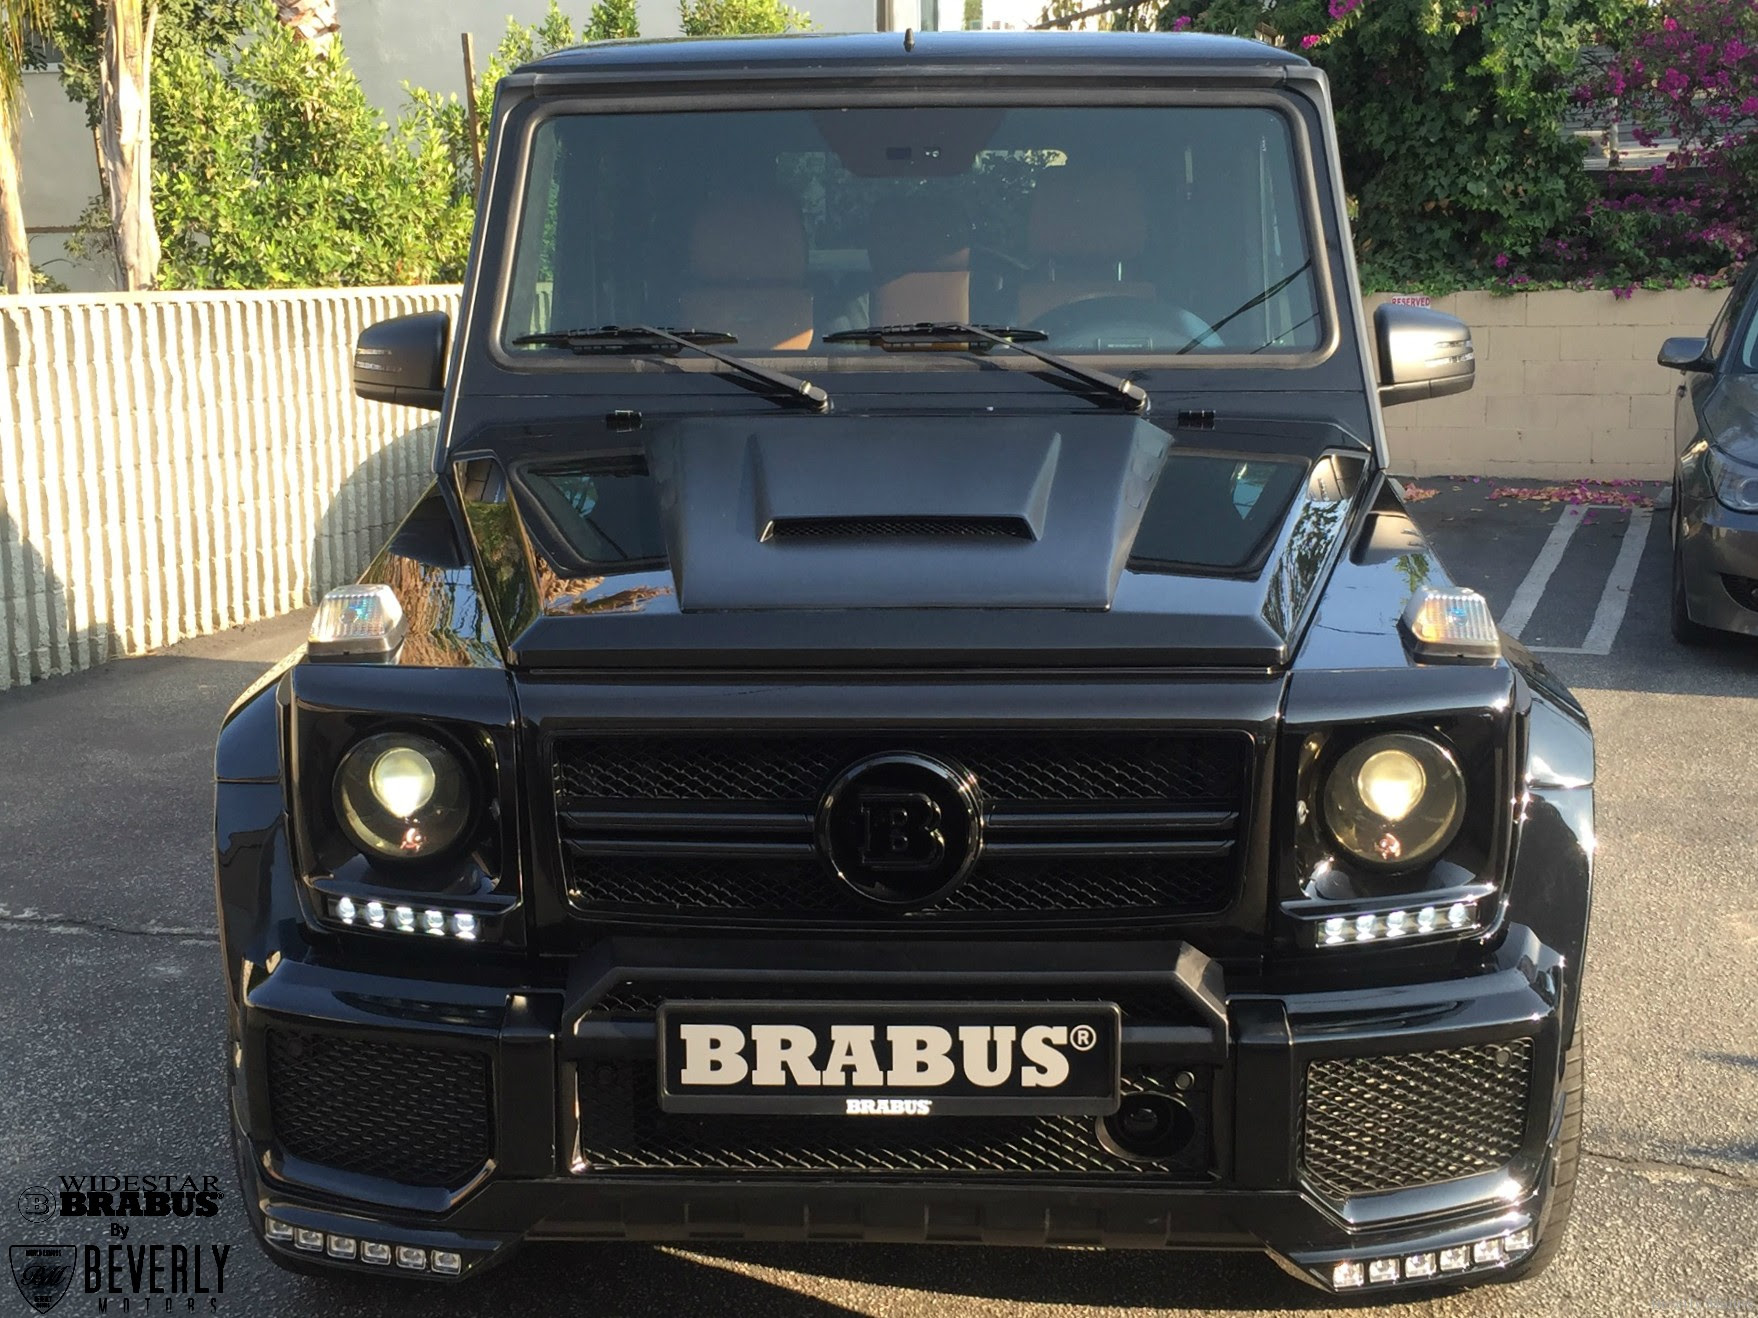 Used Brabus G55 For Sale  Upcomingcarshq.com